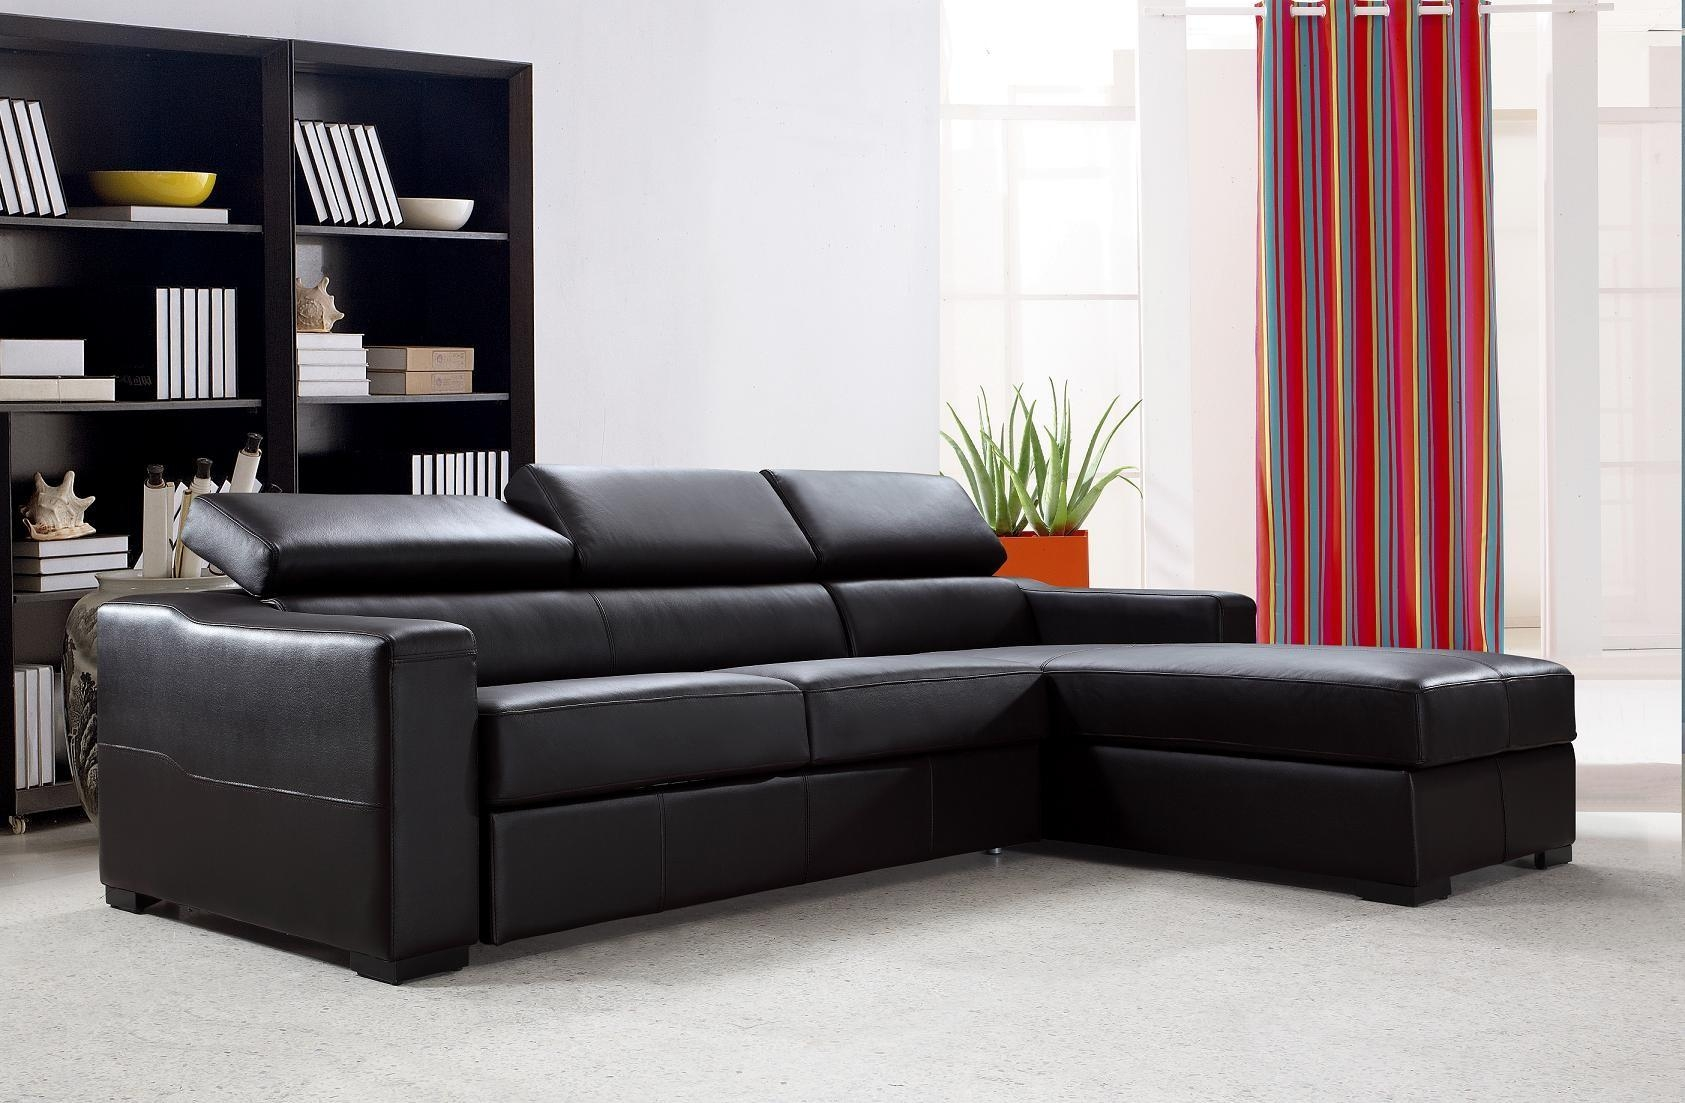 Flip Reversible Espresso Leather Sectional Sofa Bed W/ Storage For Leather Storage Sofas (View 7 of 21)